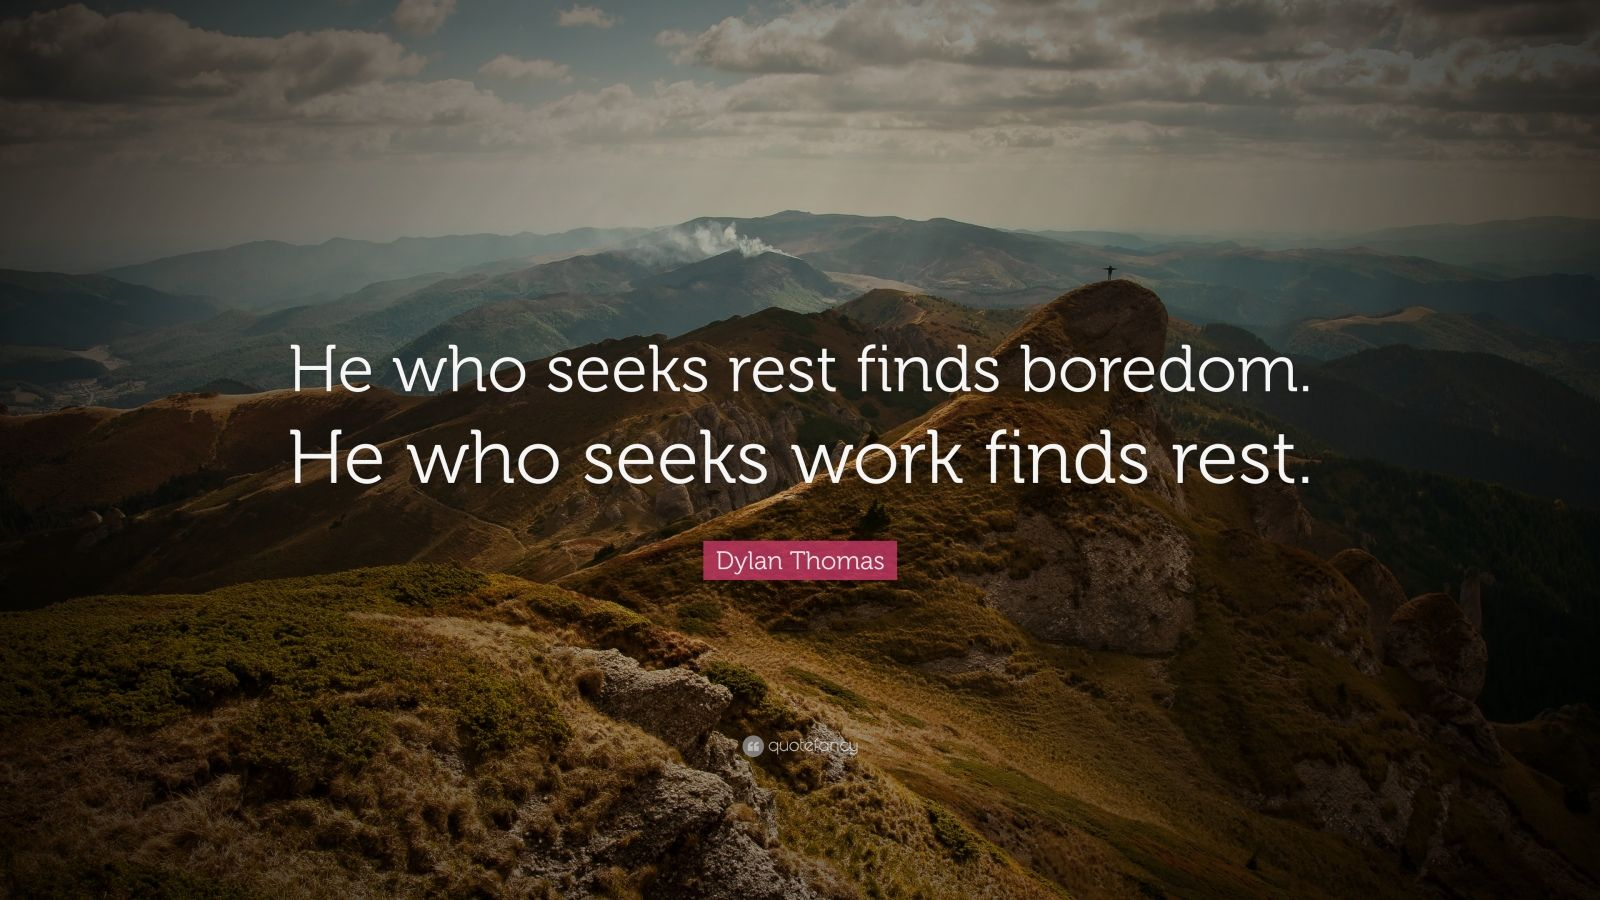 """Dylan Thomas Quote: """"He who seeks rest finds boredom. He who seeks work finds rest."""""""